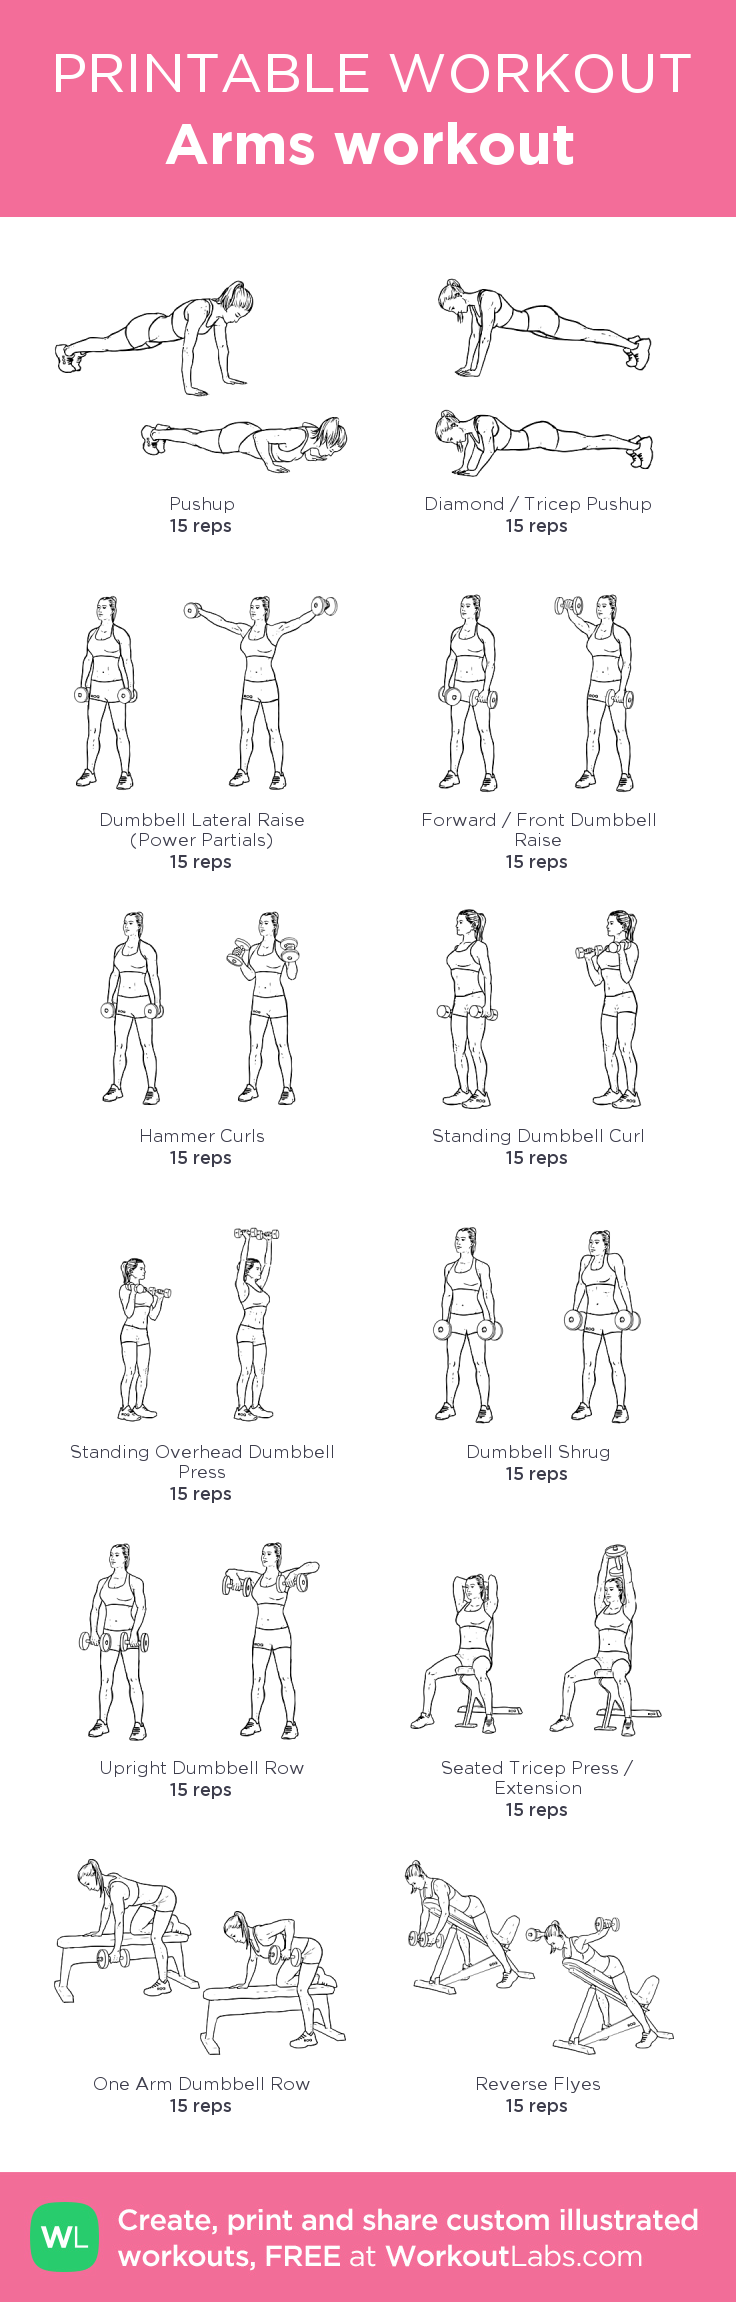 image about Printable Arm Workouts titled Pin upon Higher Entire body